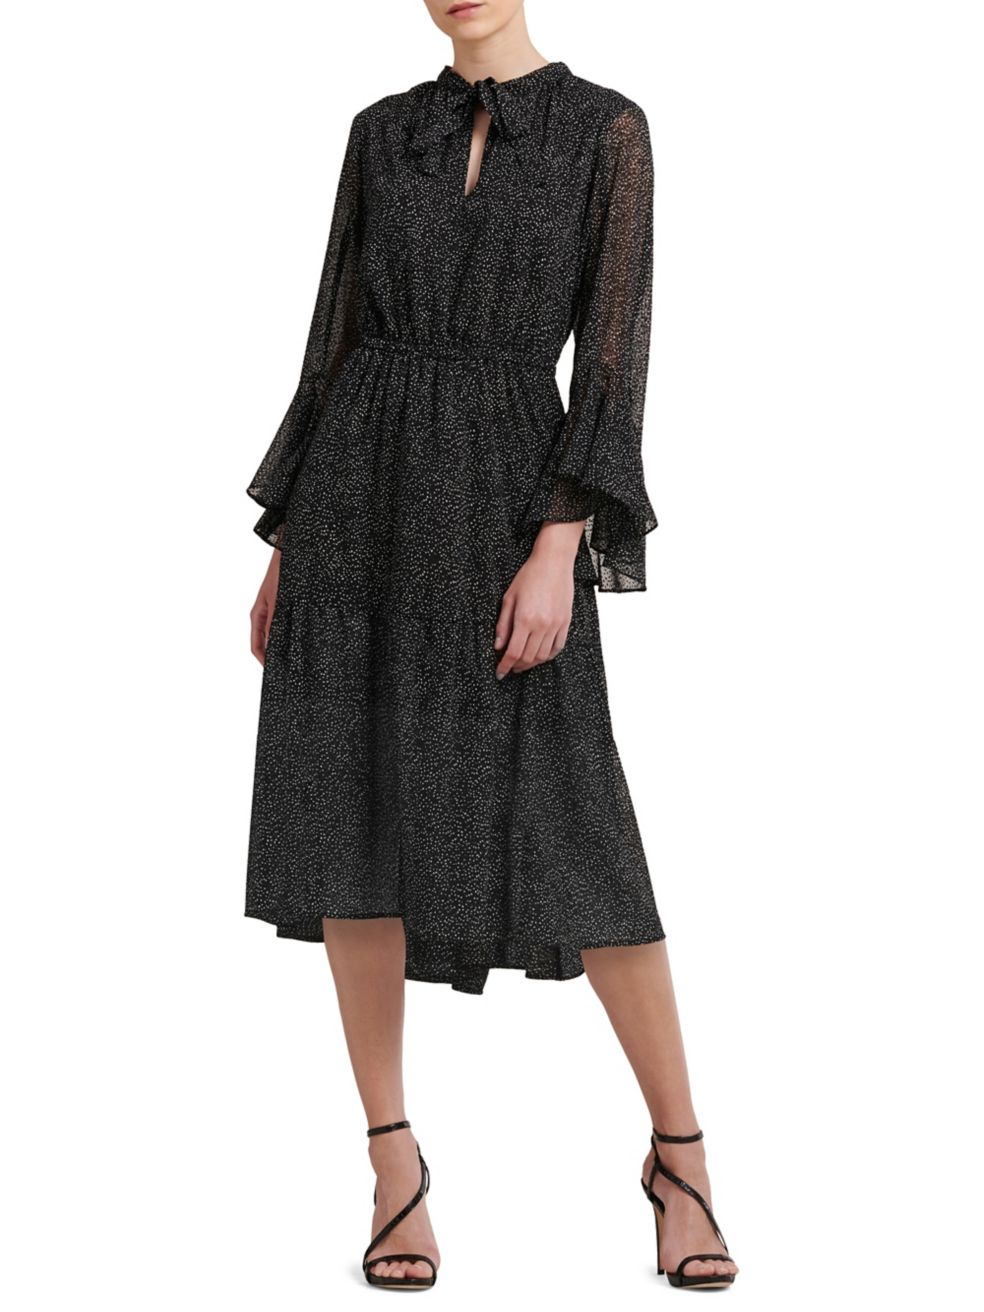 Self-Tie Bell-Sleeve Dress - $175 | $122.50 on sale with code: FRIENDS, Donna Karan.